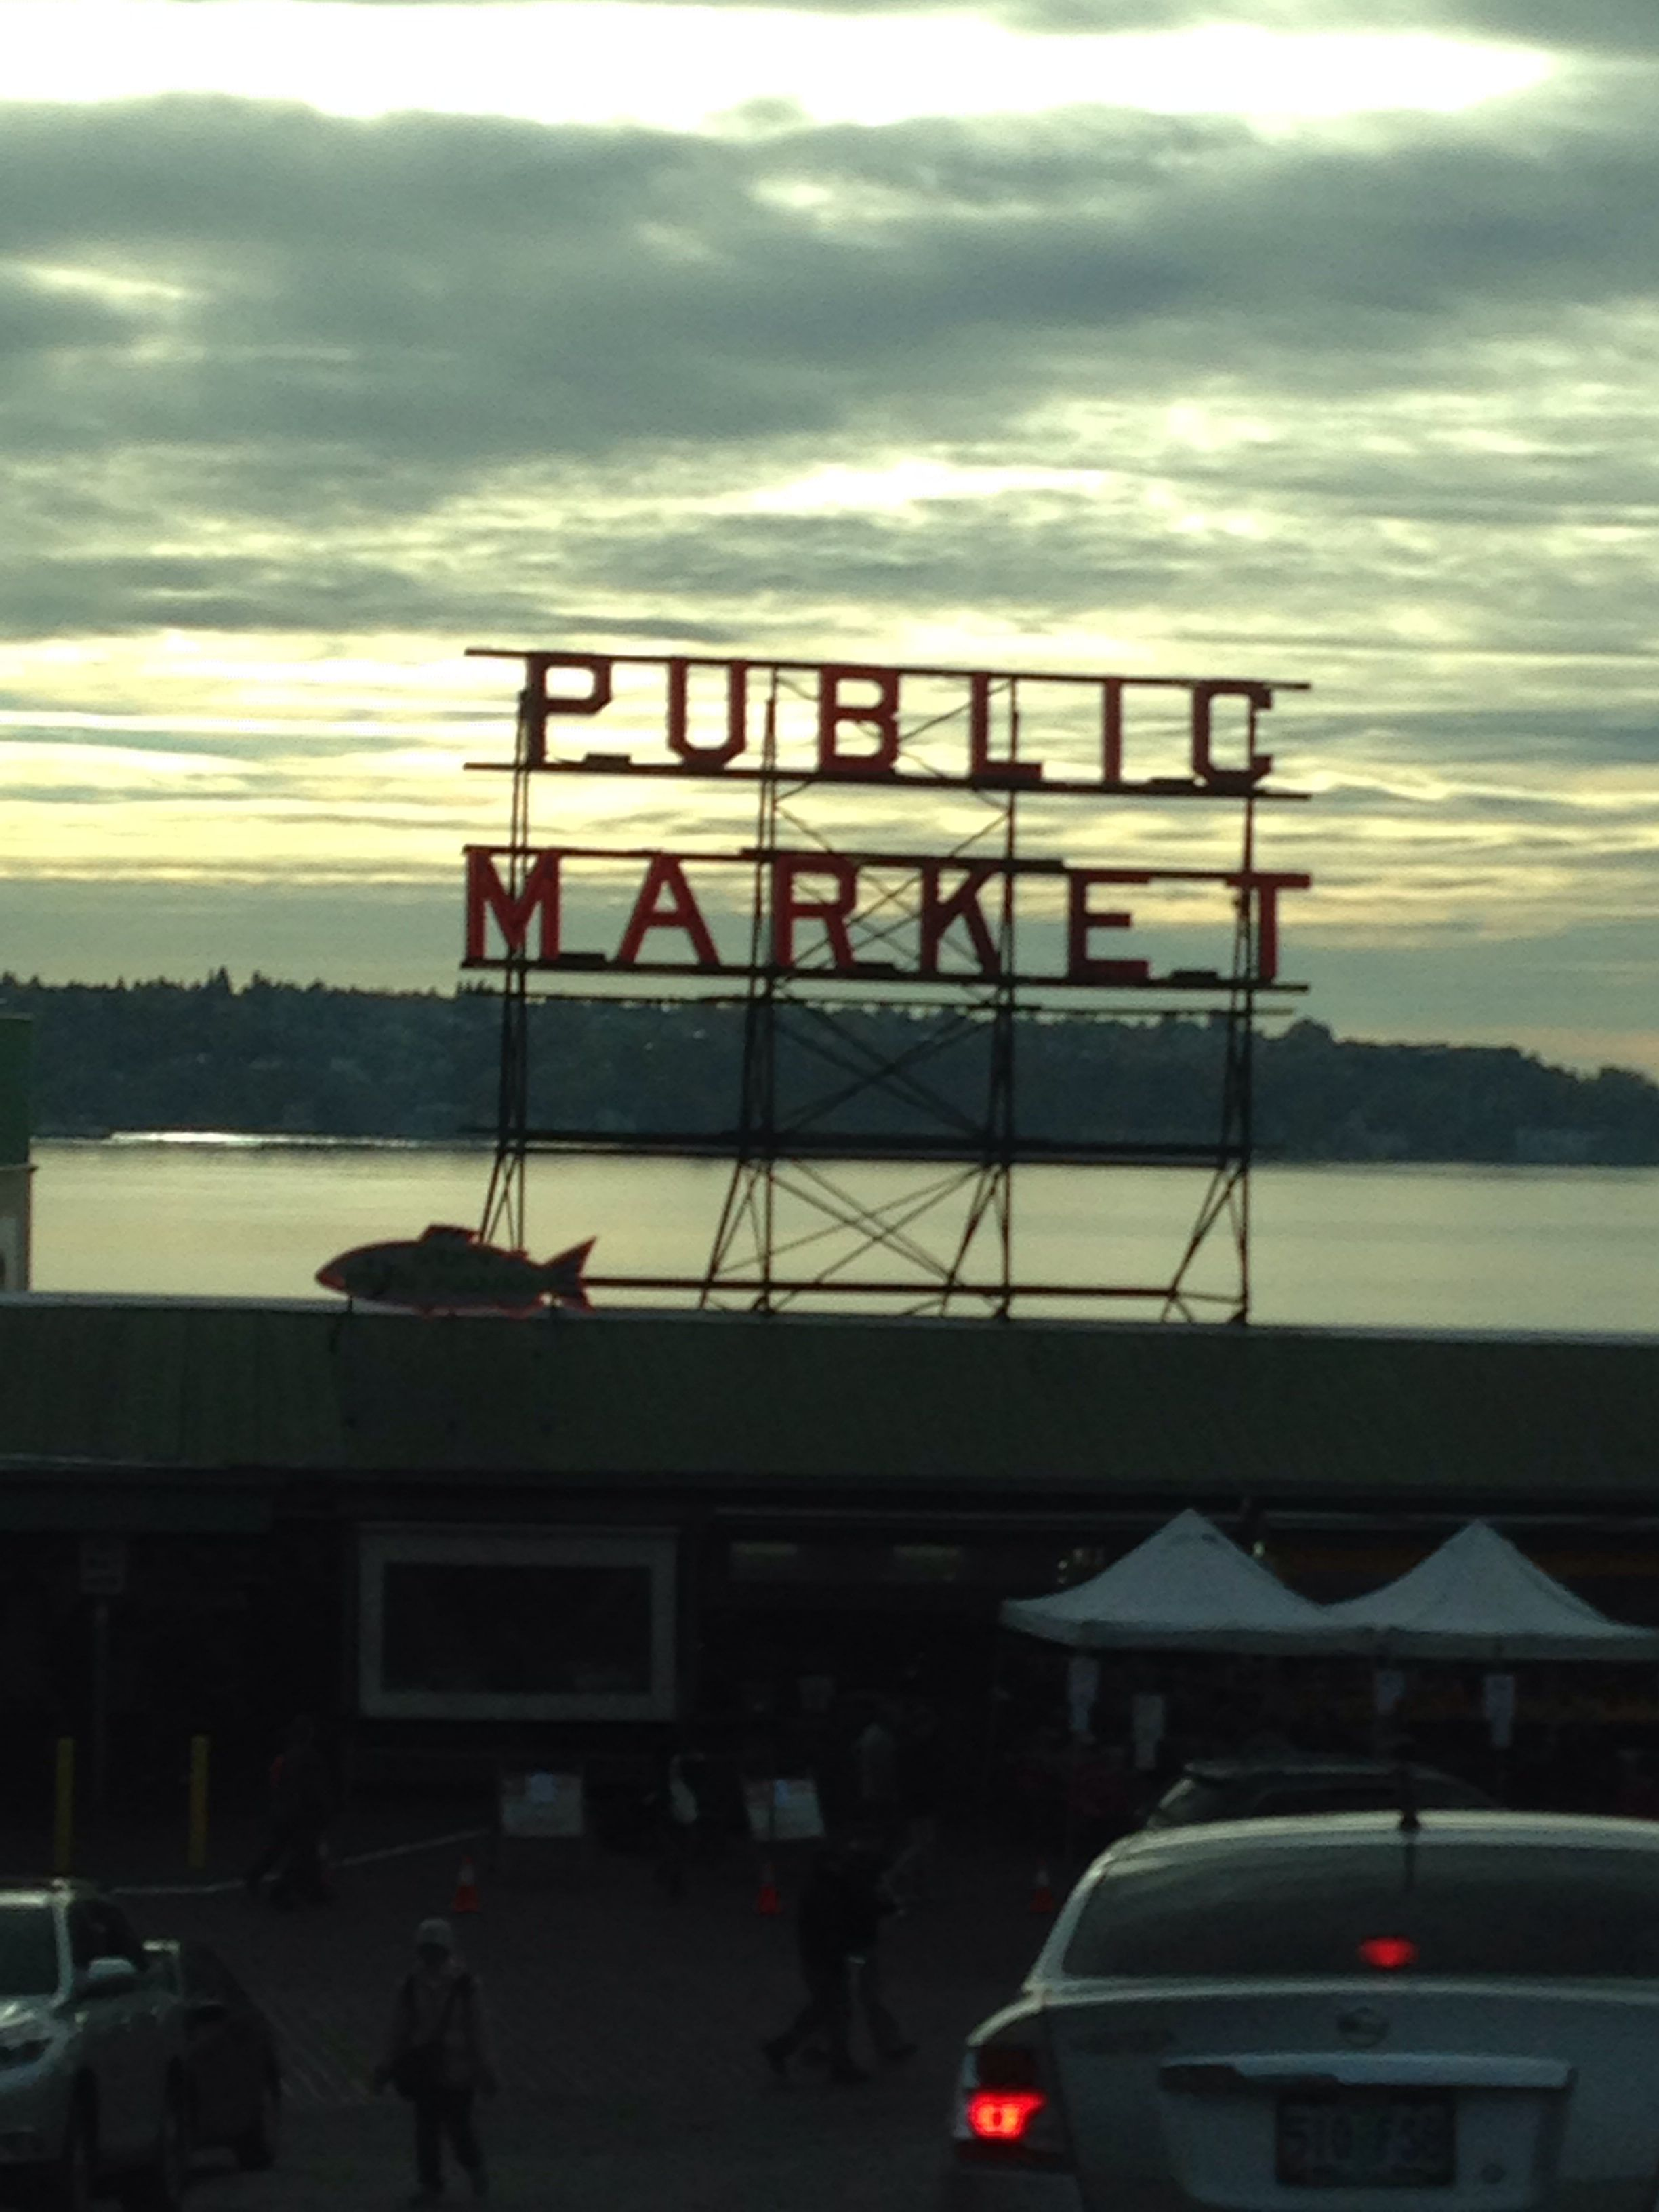 Pikes marketplaces in #seattle